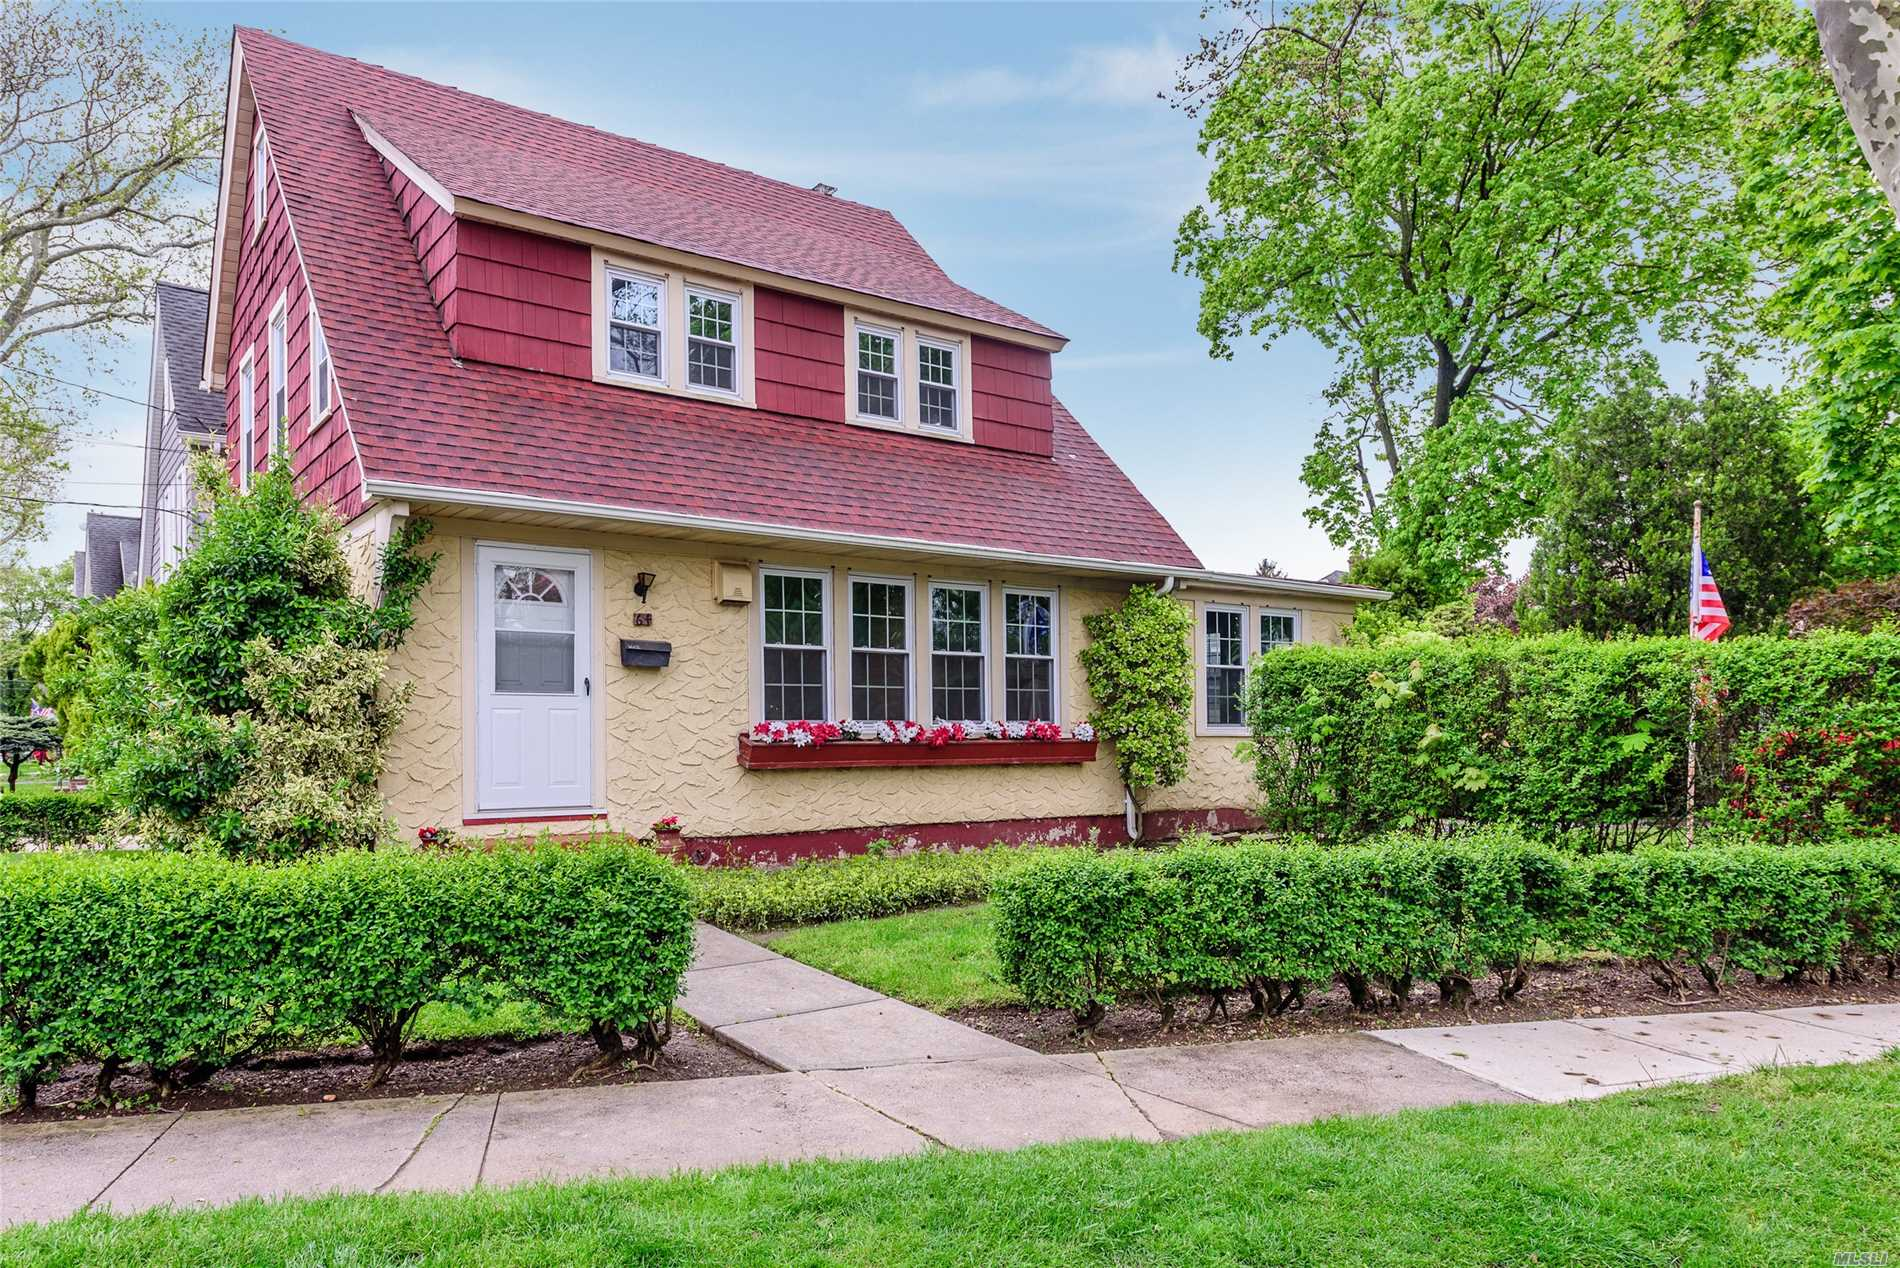 Williston Park. Perfectly located 2 family house on an over-sized lot. Featuring 3 bedrooms, 2 baths, hardwood floors, redone roof & windows, deck, 2 car garage. Won't last!